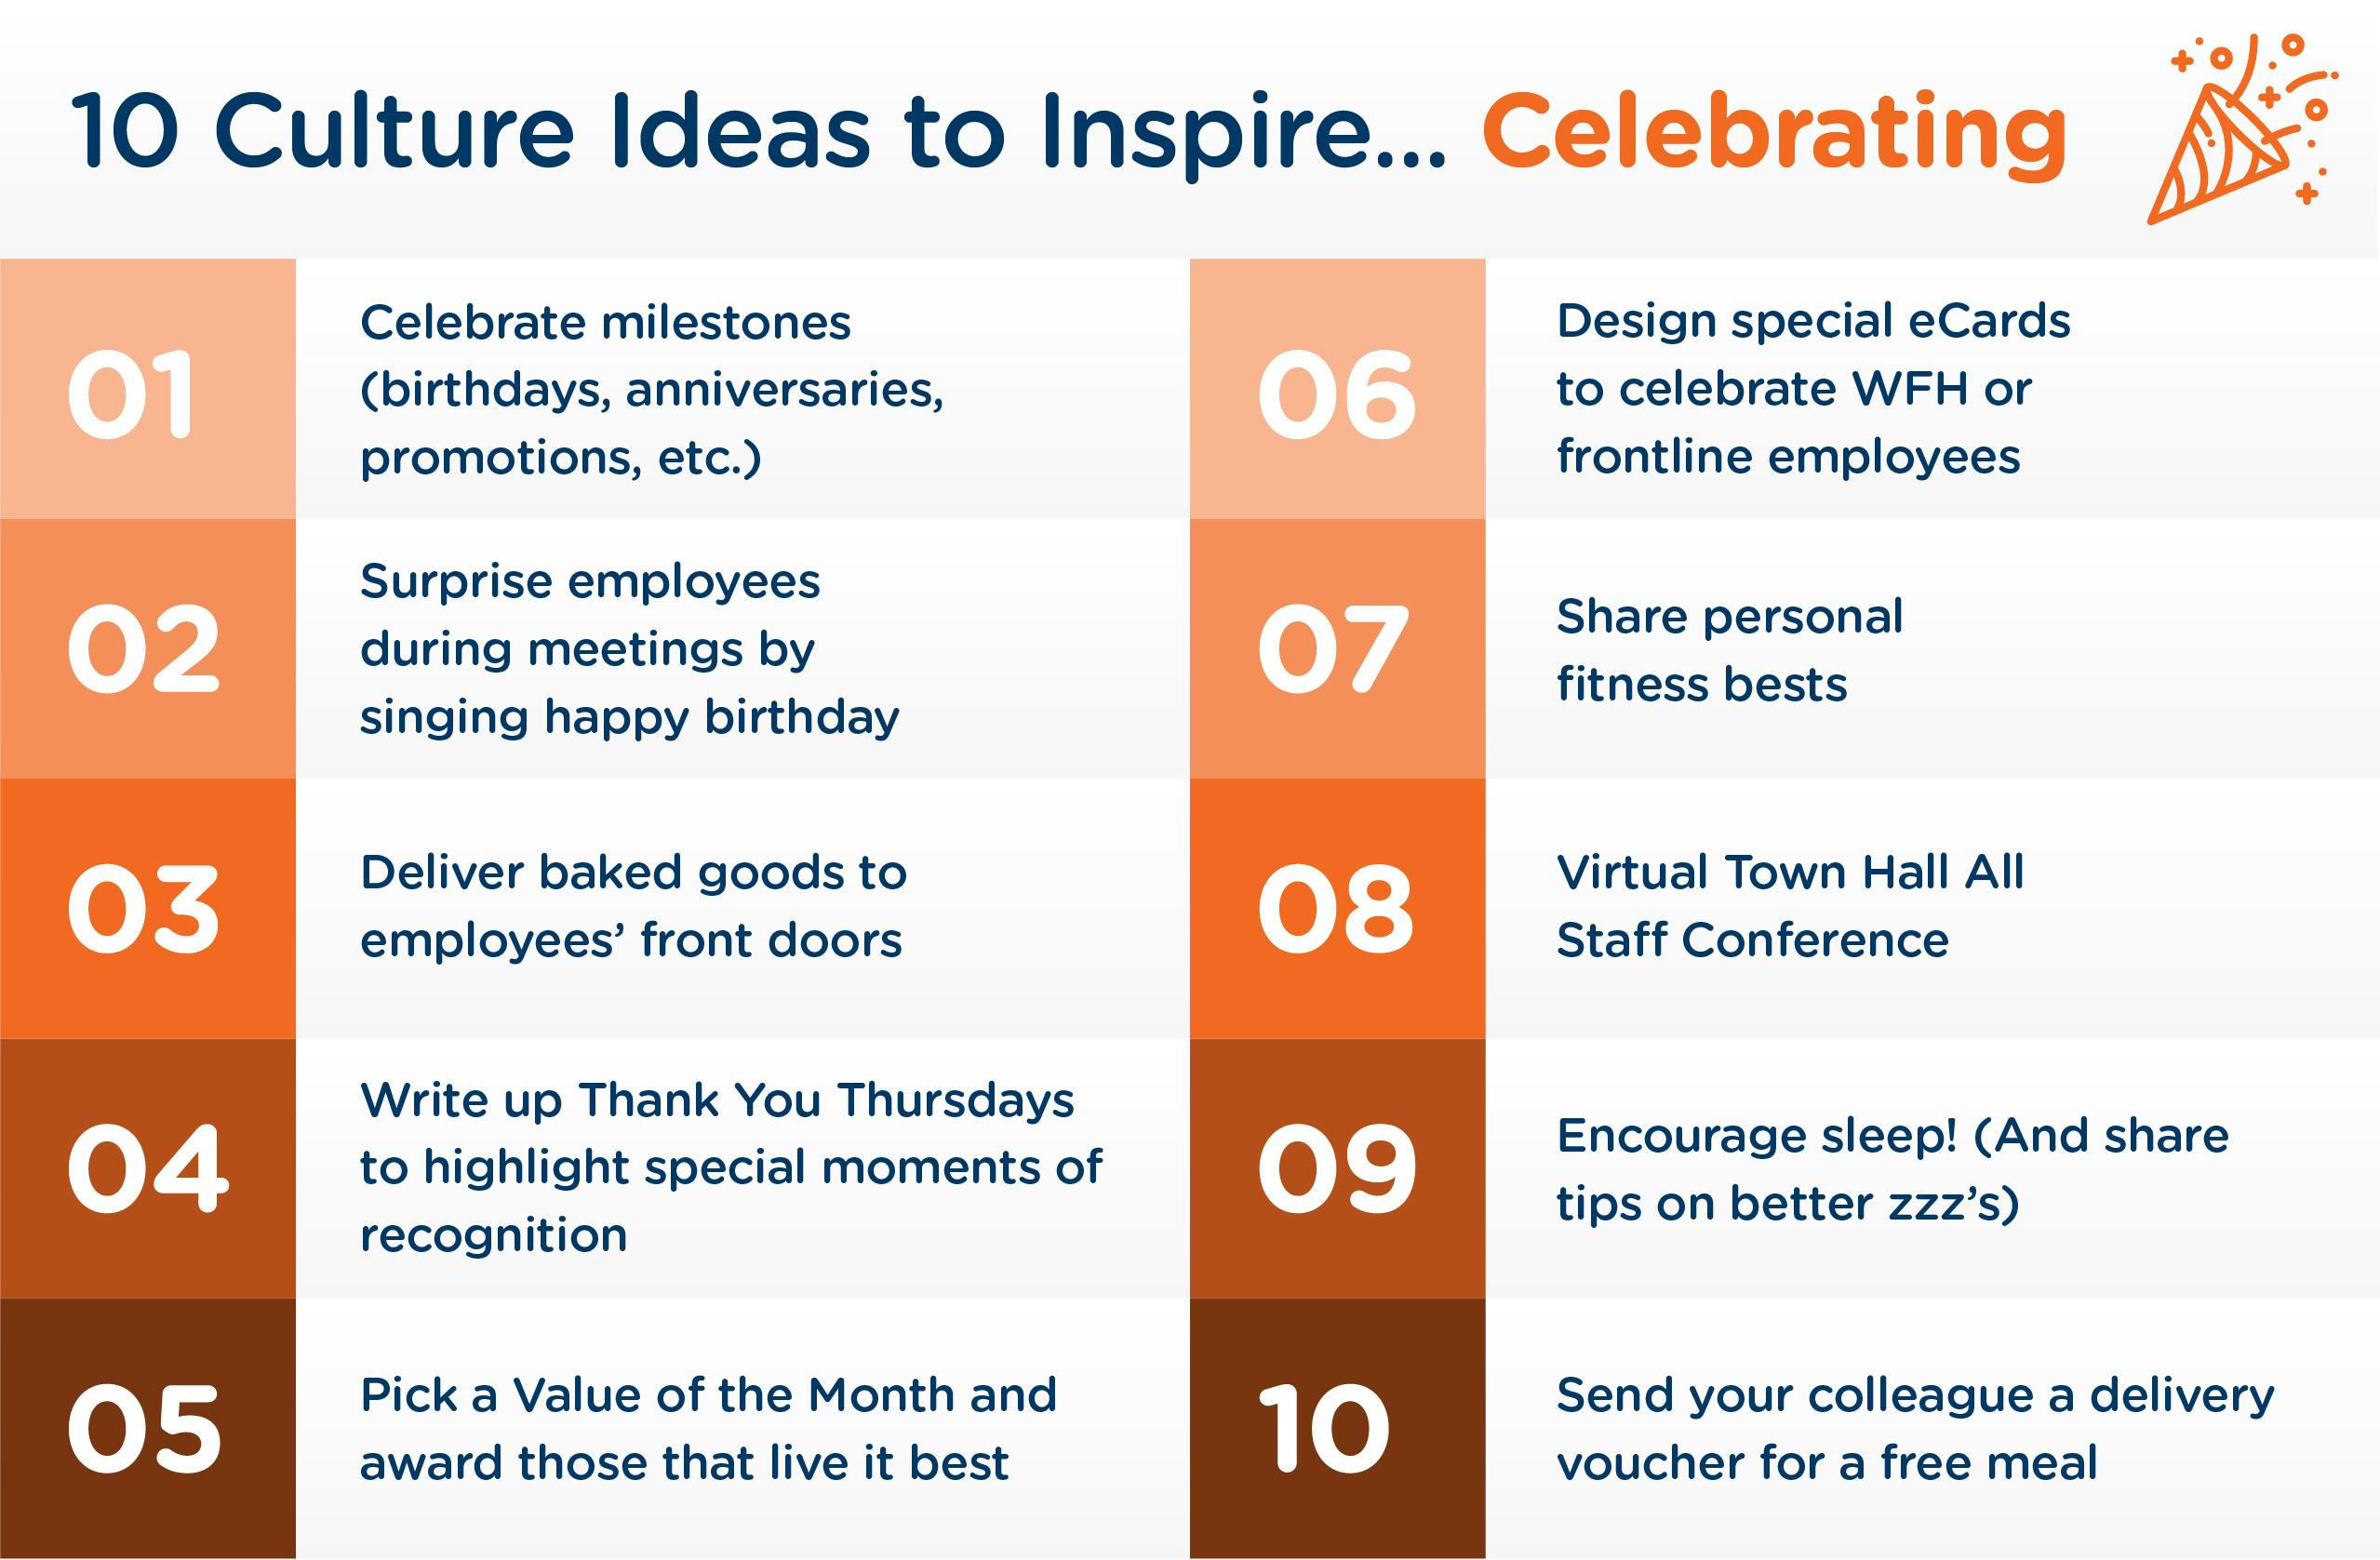 2020_10 ideas-Celebrating